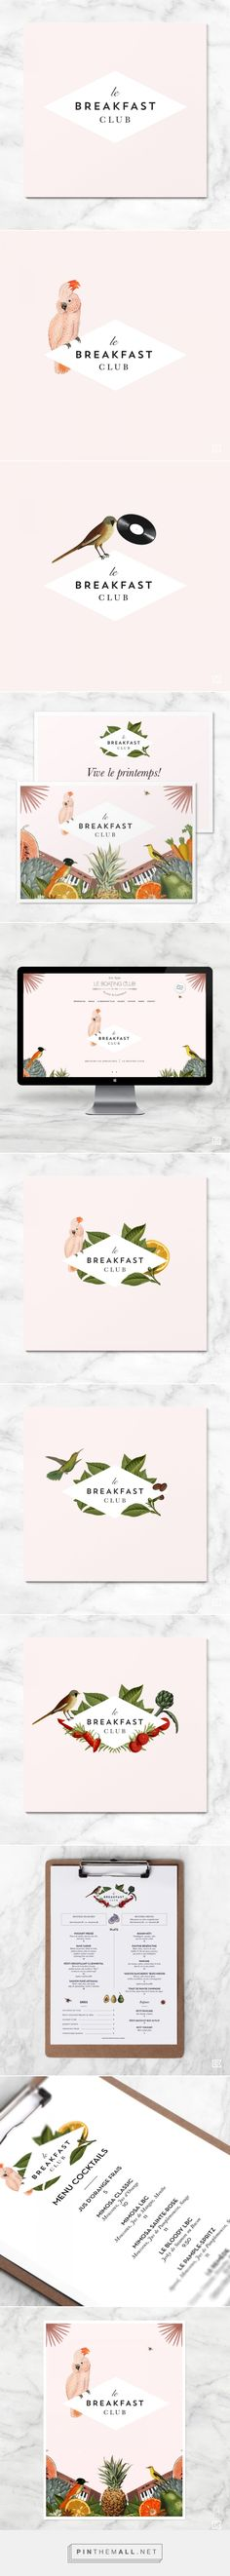 Compass Island, Le Breakfast Club branding. Love the diamond shape with the illustrated tropical birds | Graphic Design | Logo Design